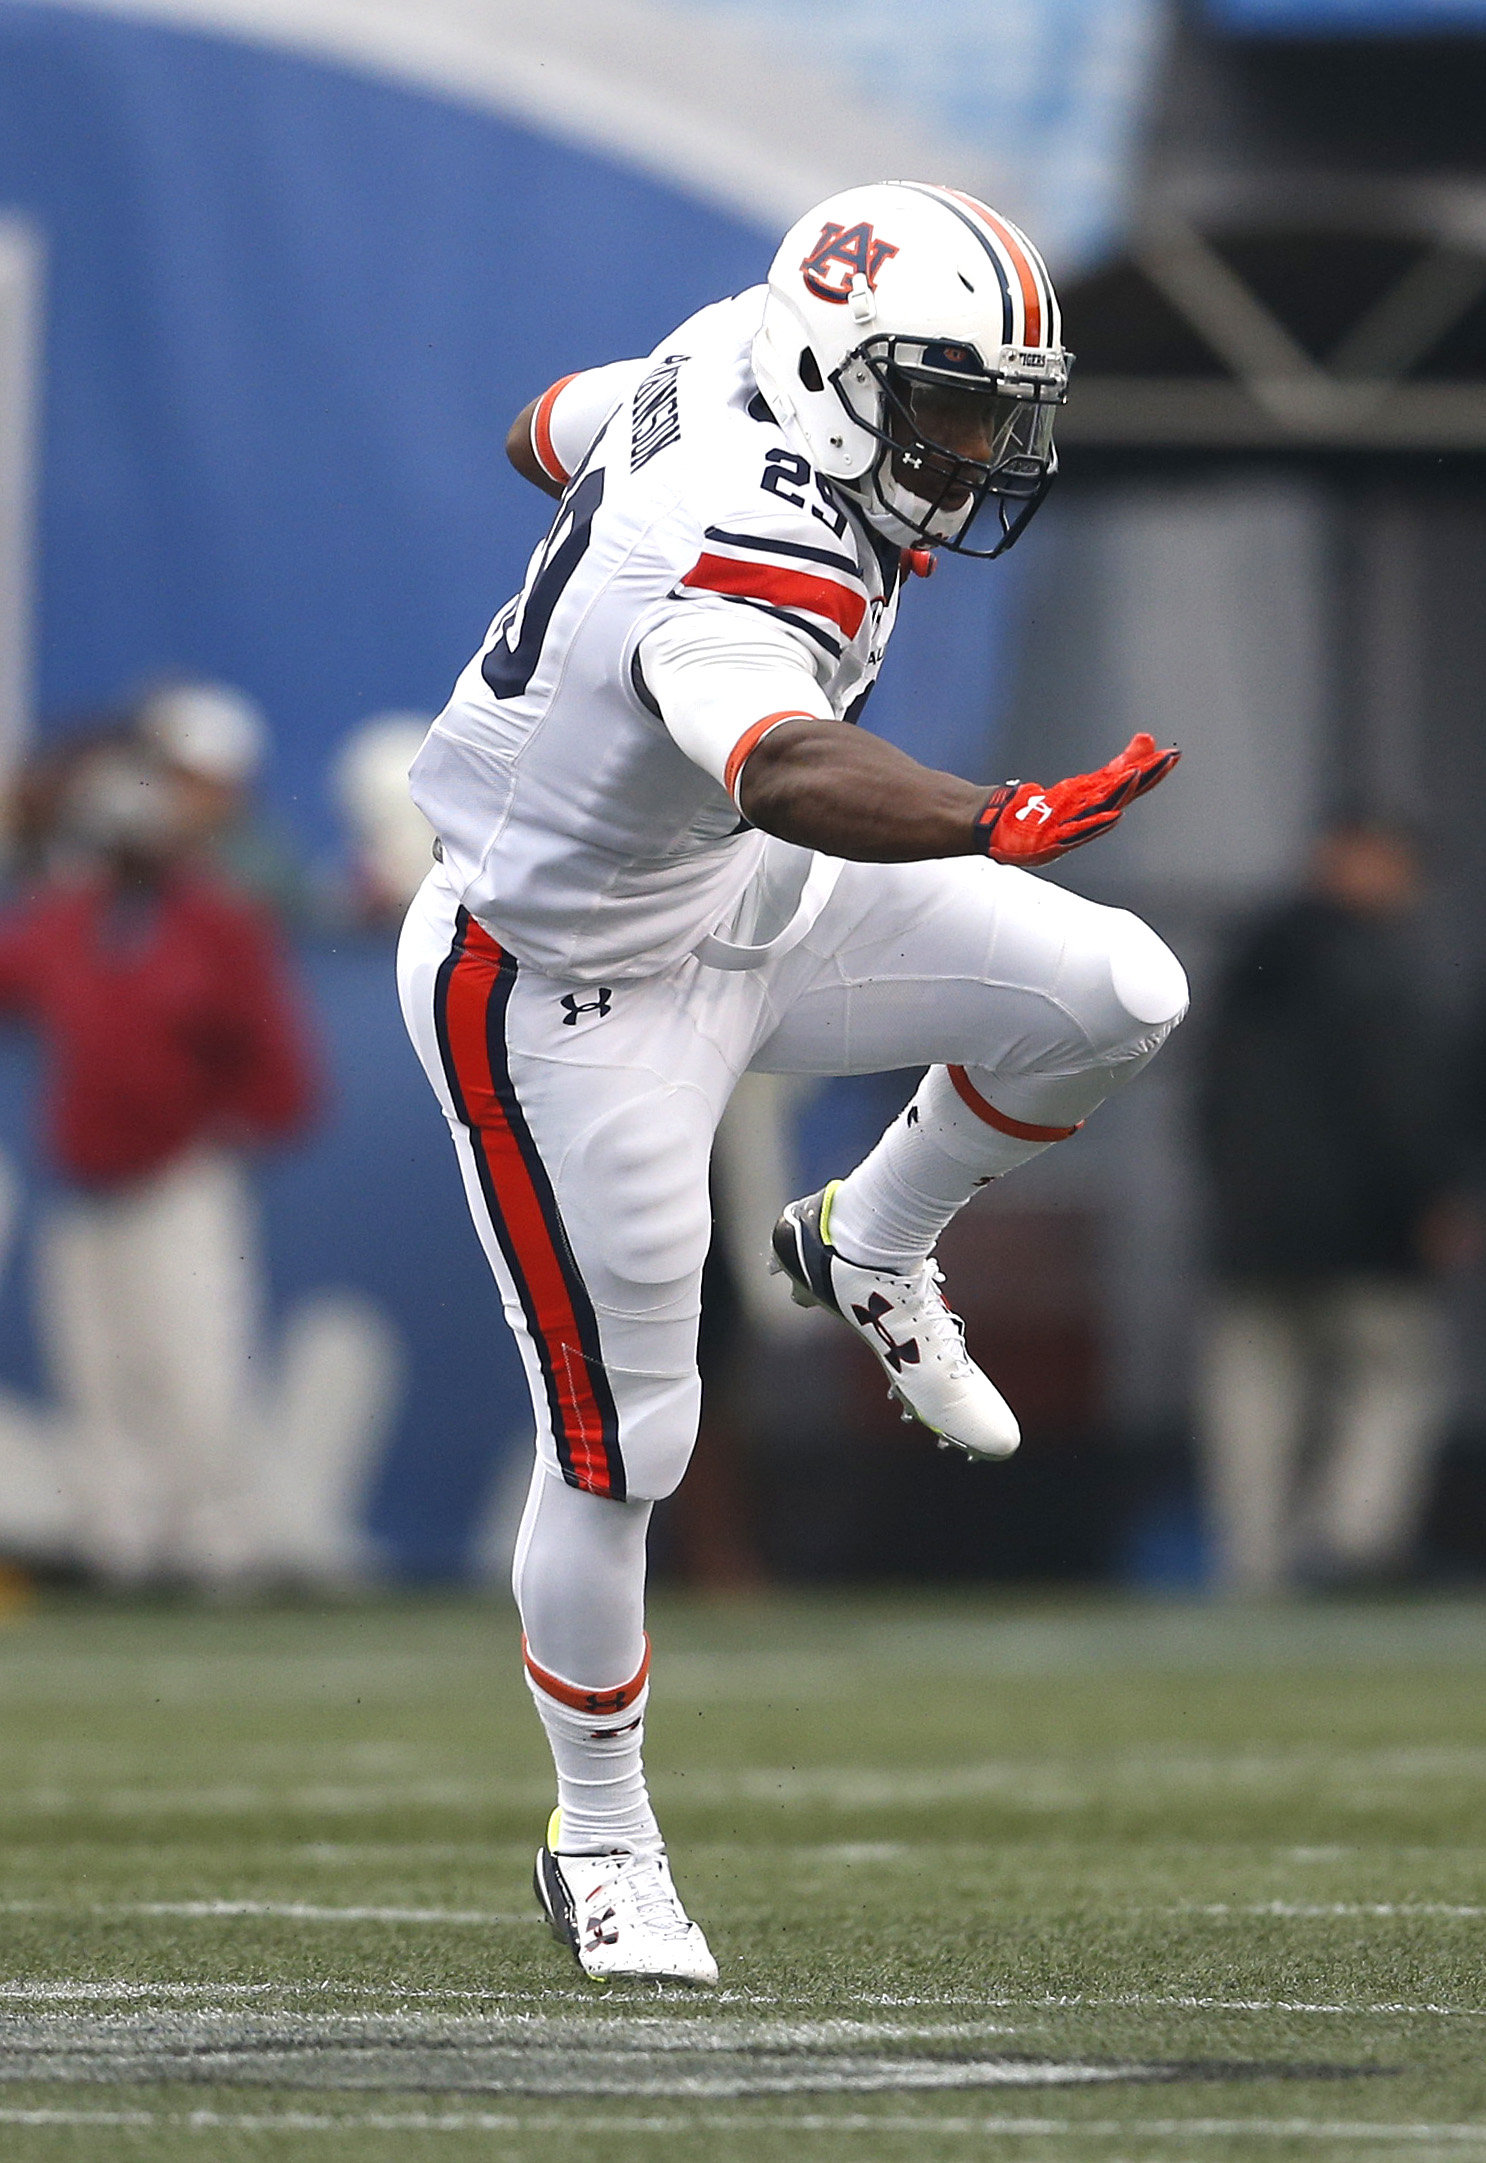 Auburn running back Jovon Robinson (29) carries the ball during the first half of the Birmingham Bowl NCAA college football game against Memphis, Wednesday, Dec. 30, 2015, in Birmingham, Ala. (AP Photo/Butch Dill)